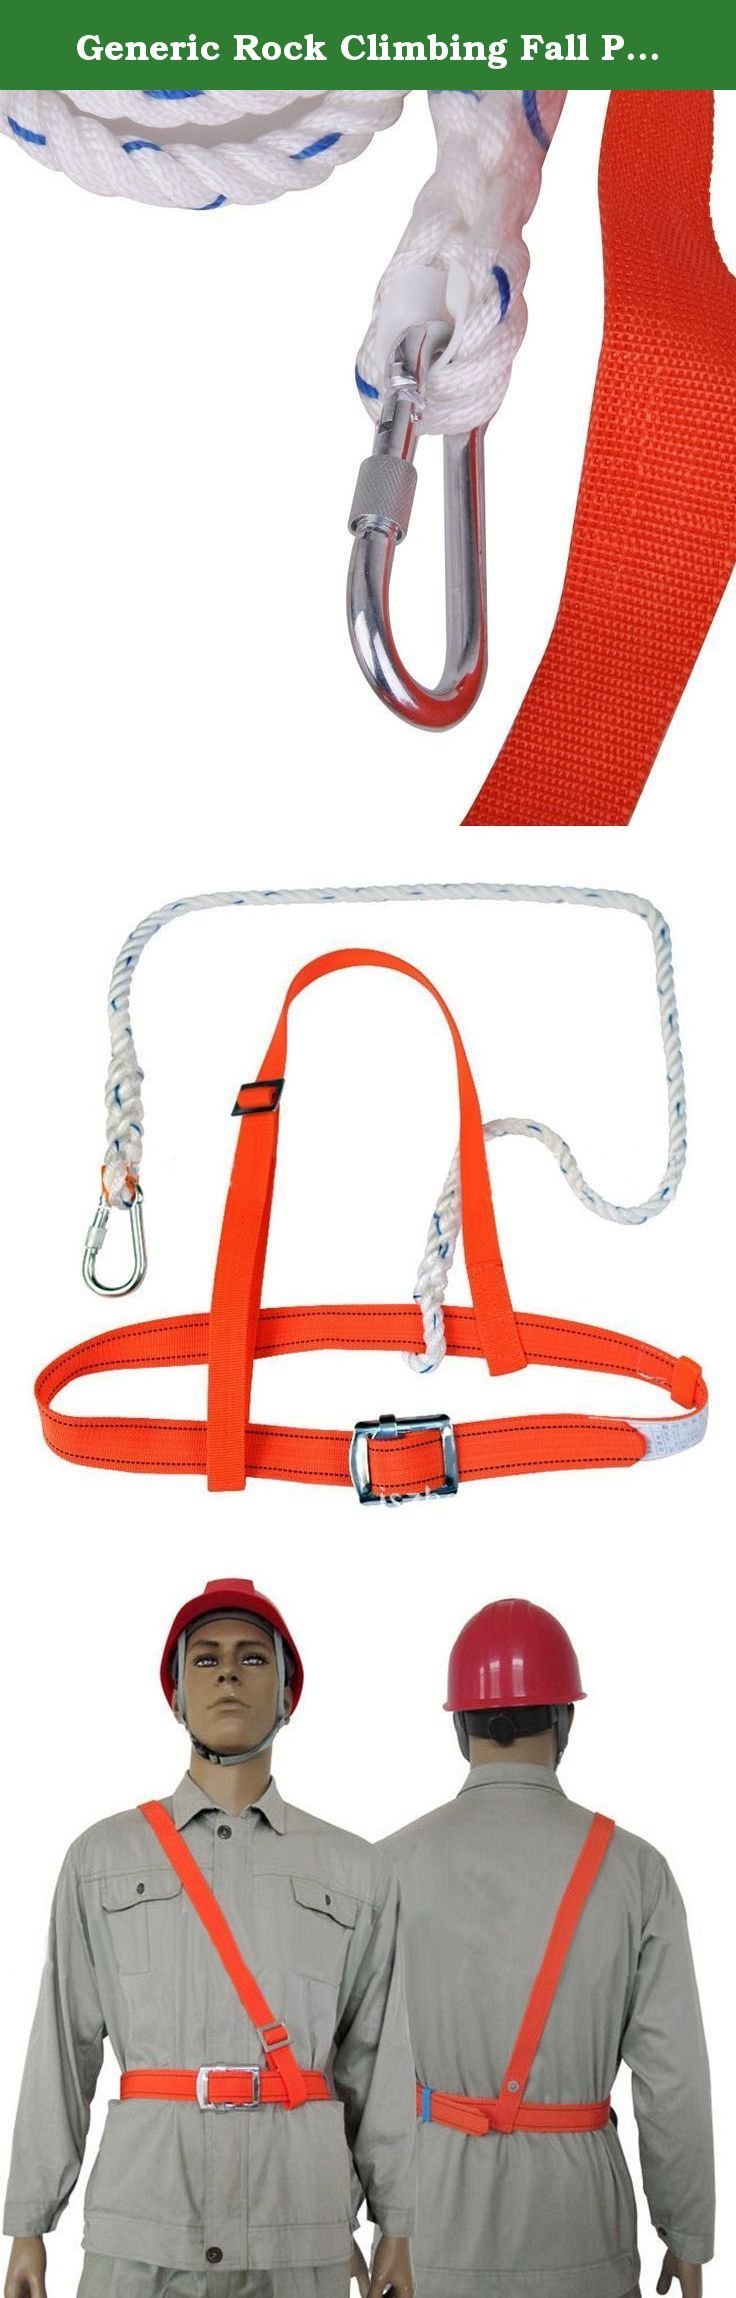 Generic Rock Climbing Fall Protection Harness & Safety